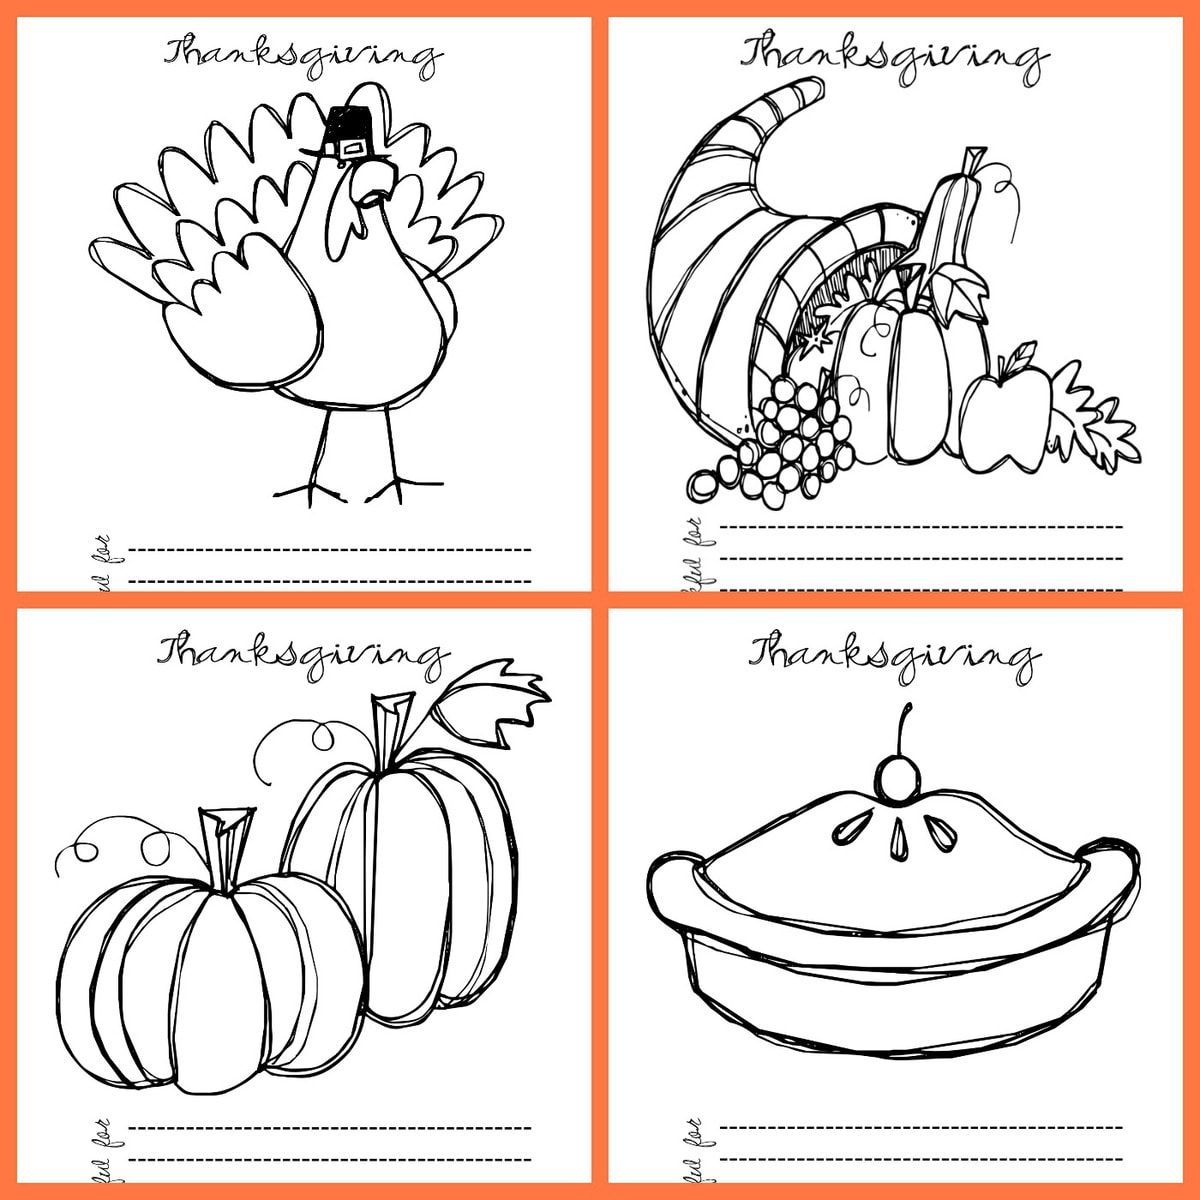 photograph relating to Free Printable Thanksgiving Coloring Pages titled Cost-free Printable Thanksgiving Coloring Internet pages Lil Luna